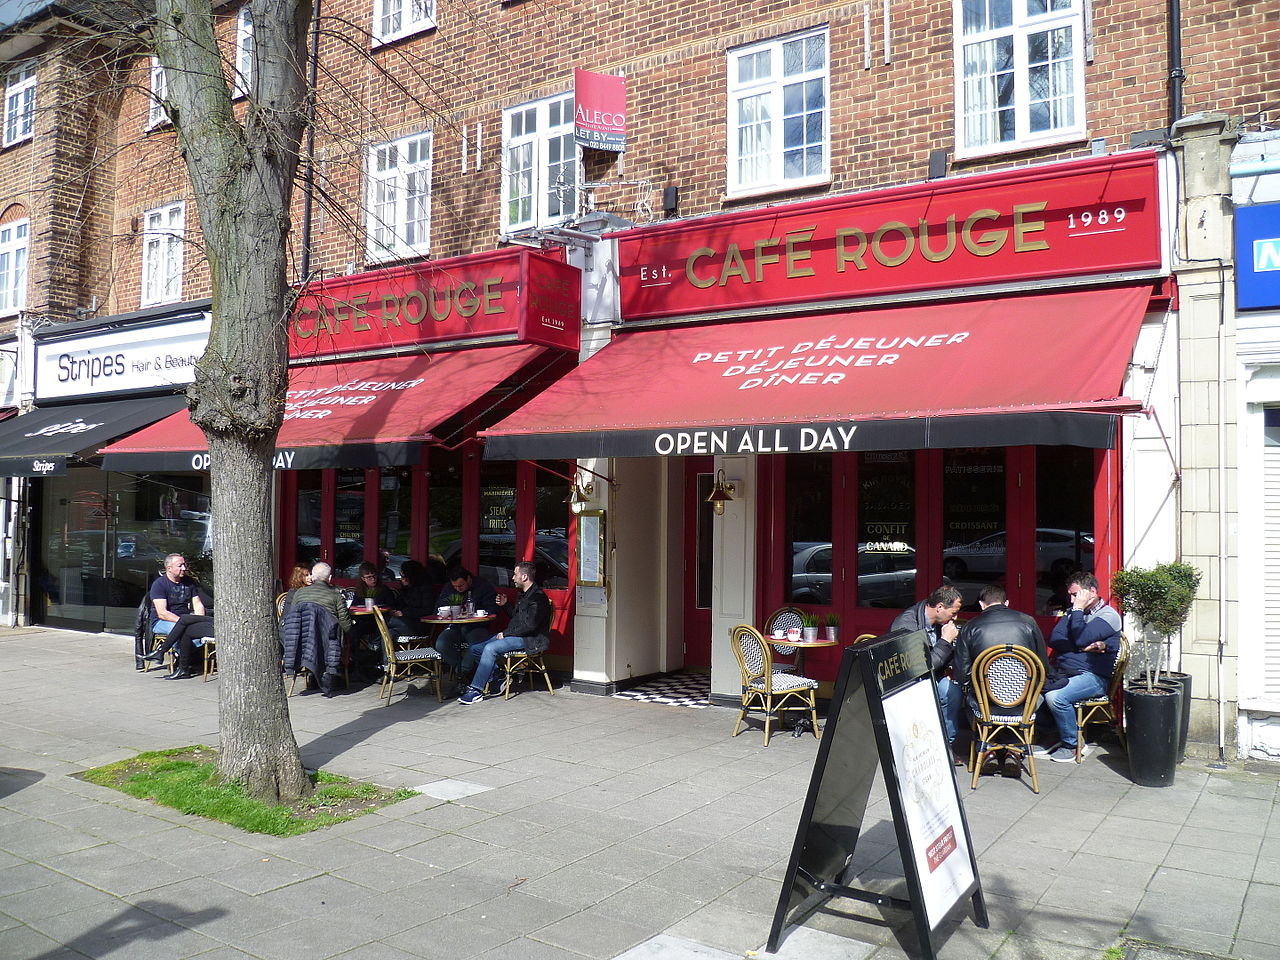 cafe rouge front